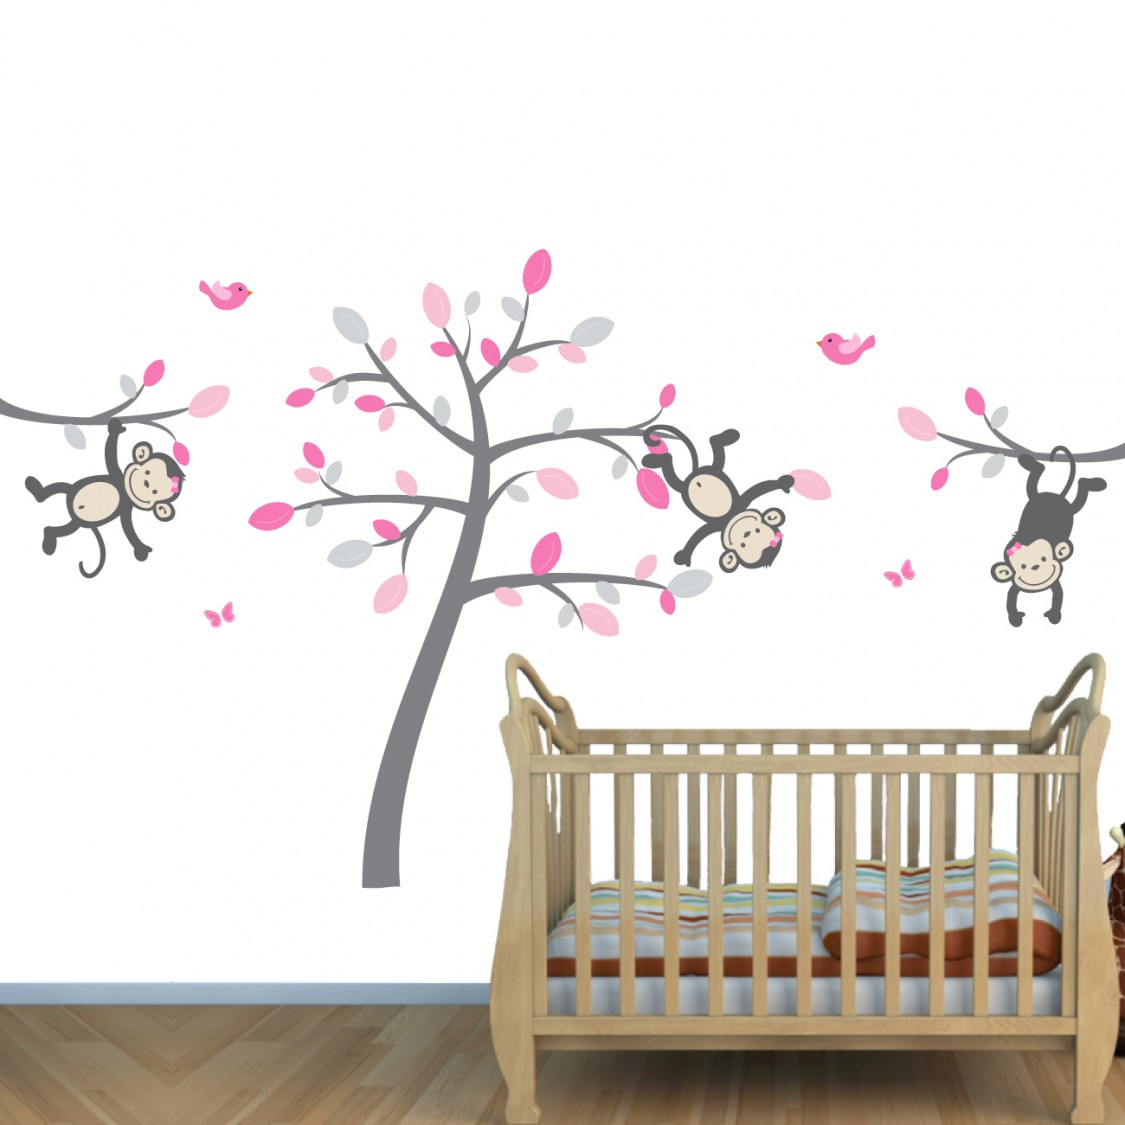 Pink And Gray Jungle Wall Mural With Monkey Decals For Girls Bedrooms Part 55